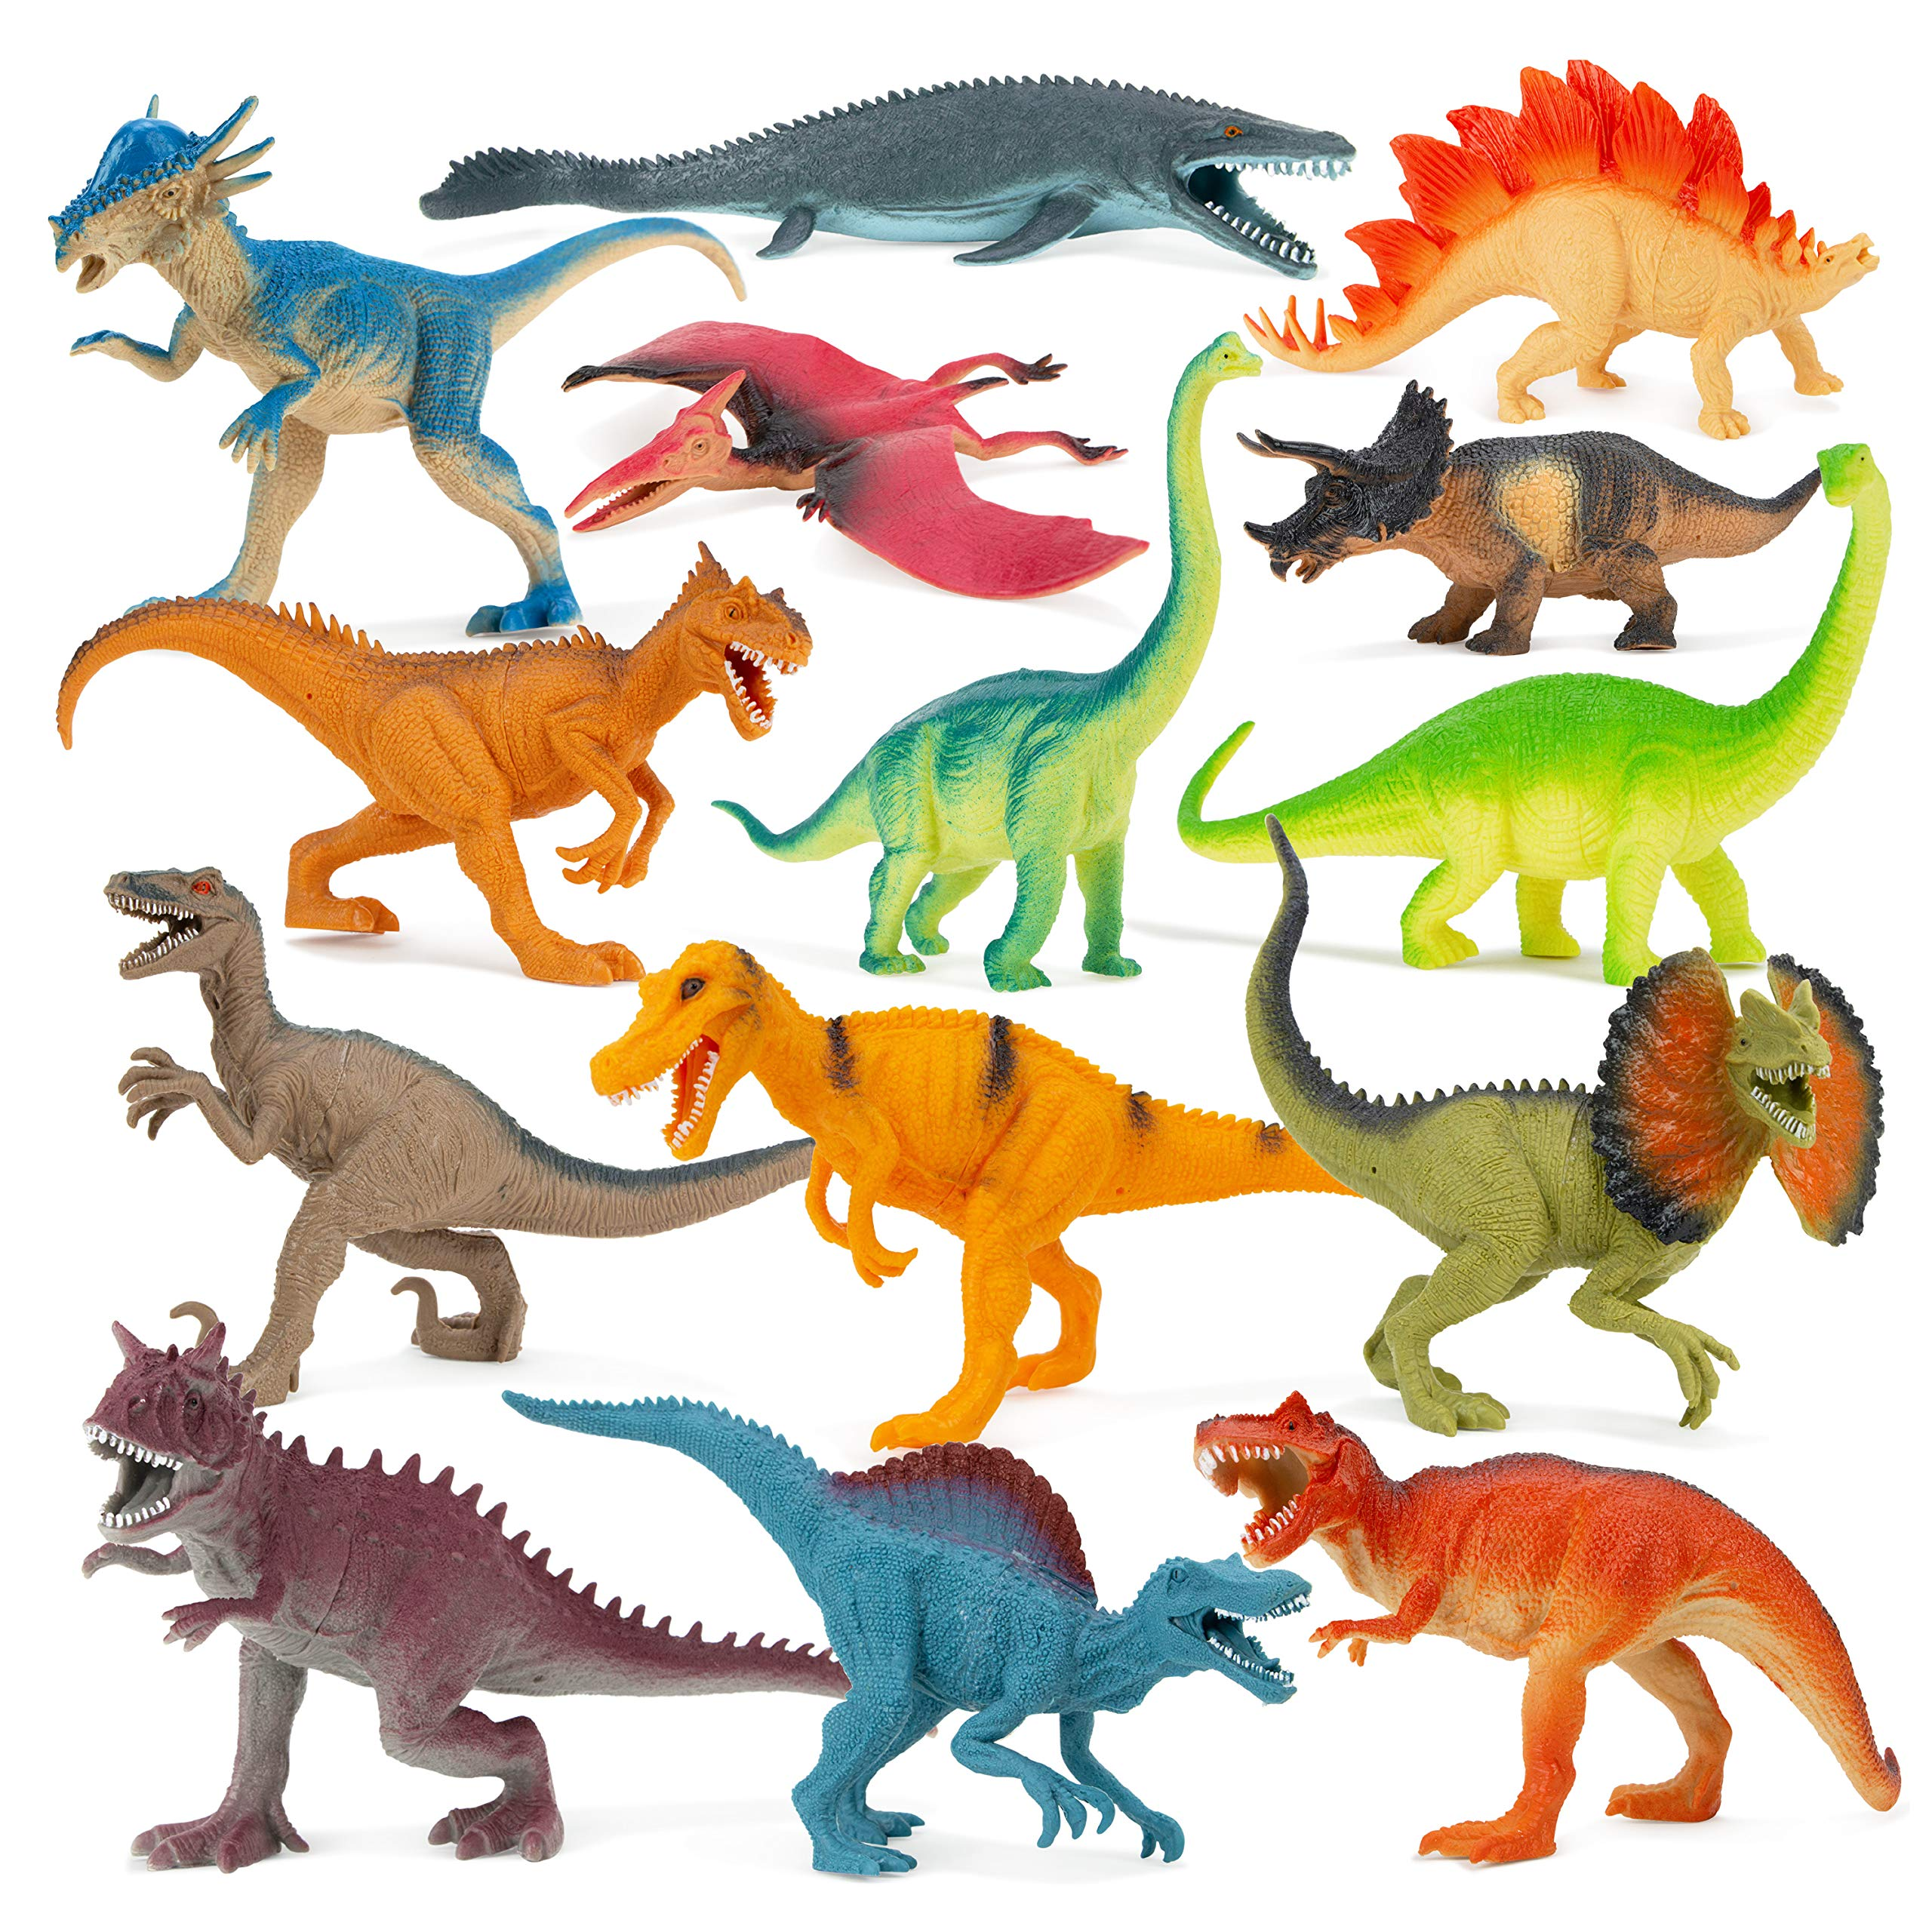 Boley Dinosaur Book Bundle - 14 Pack Dinosaur Toys for Kids with Educational Dino Guide Pamphlet - Dinosaur Figures for Boys and Girls Ages 3 and Up